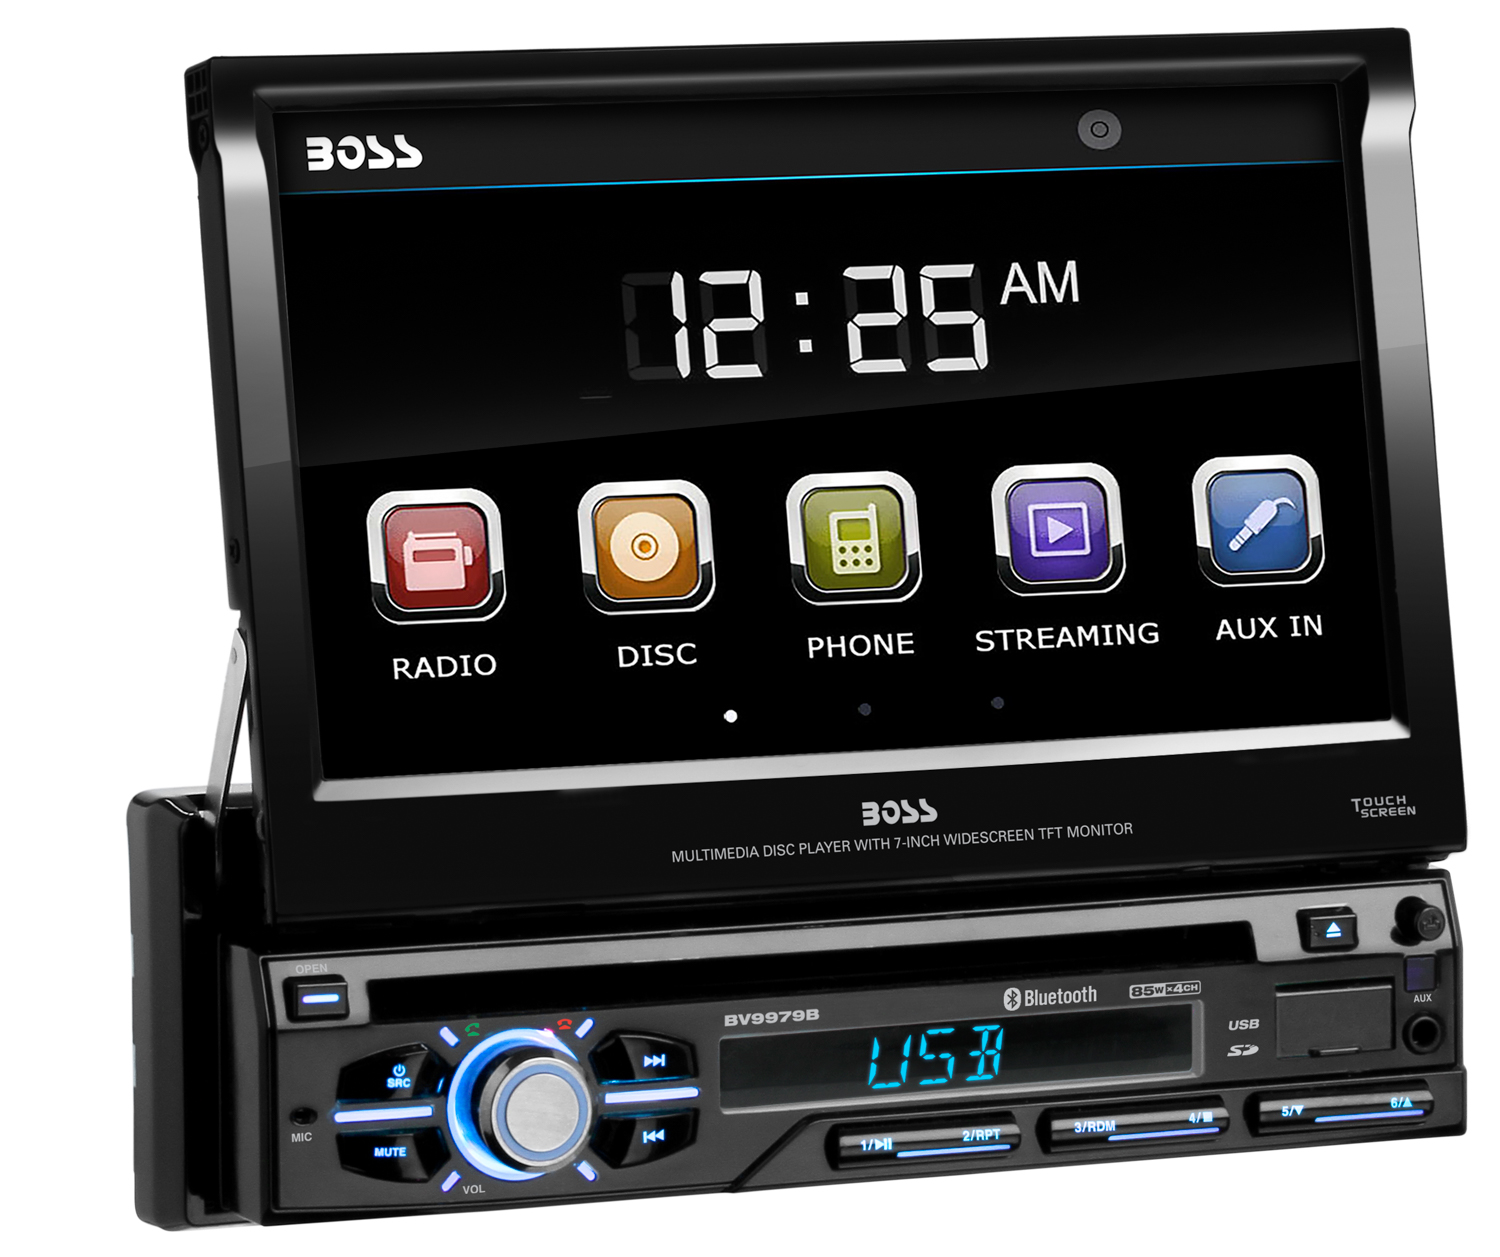 boss bv9979b car dvd cd player 7 touchscreen monitor usb. Black Bedroom Furniture Sets. Home Design Ideas